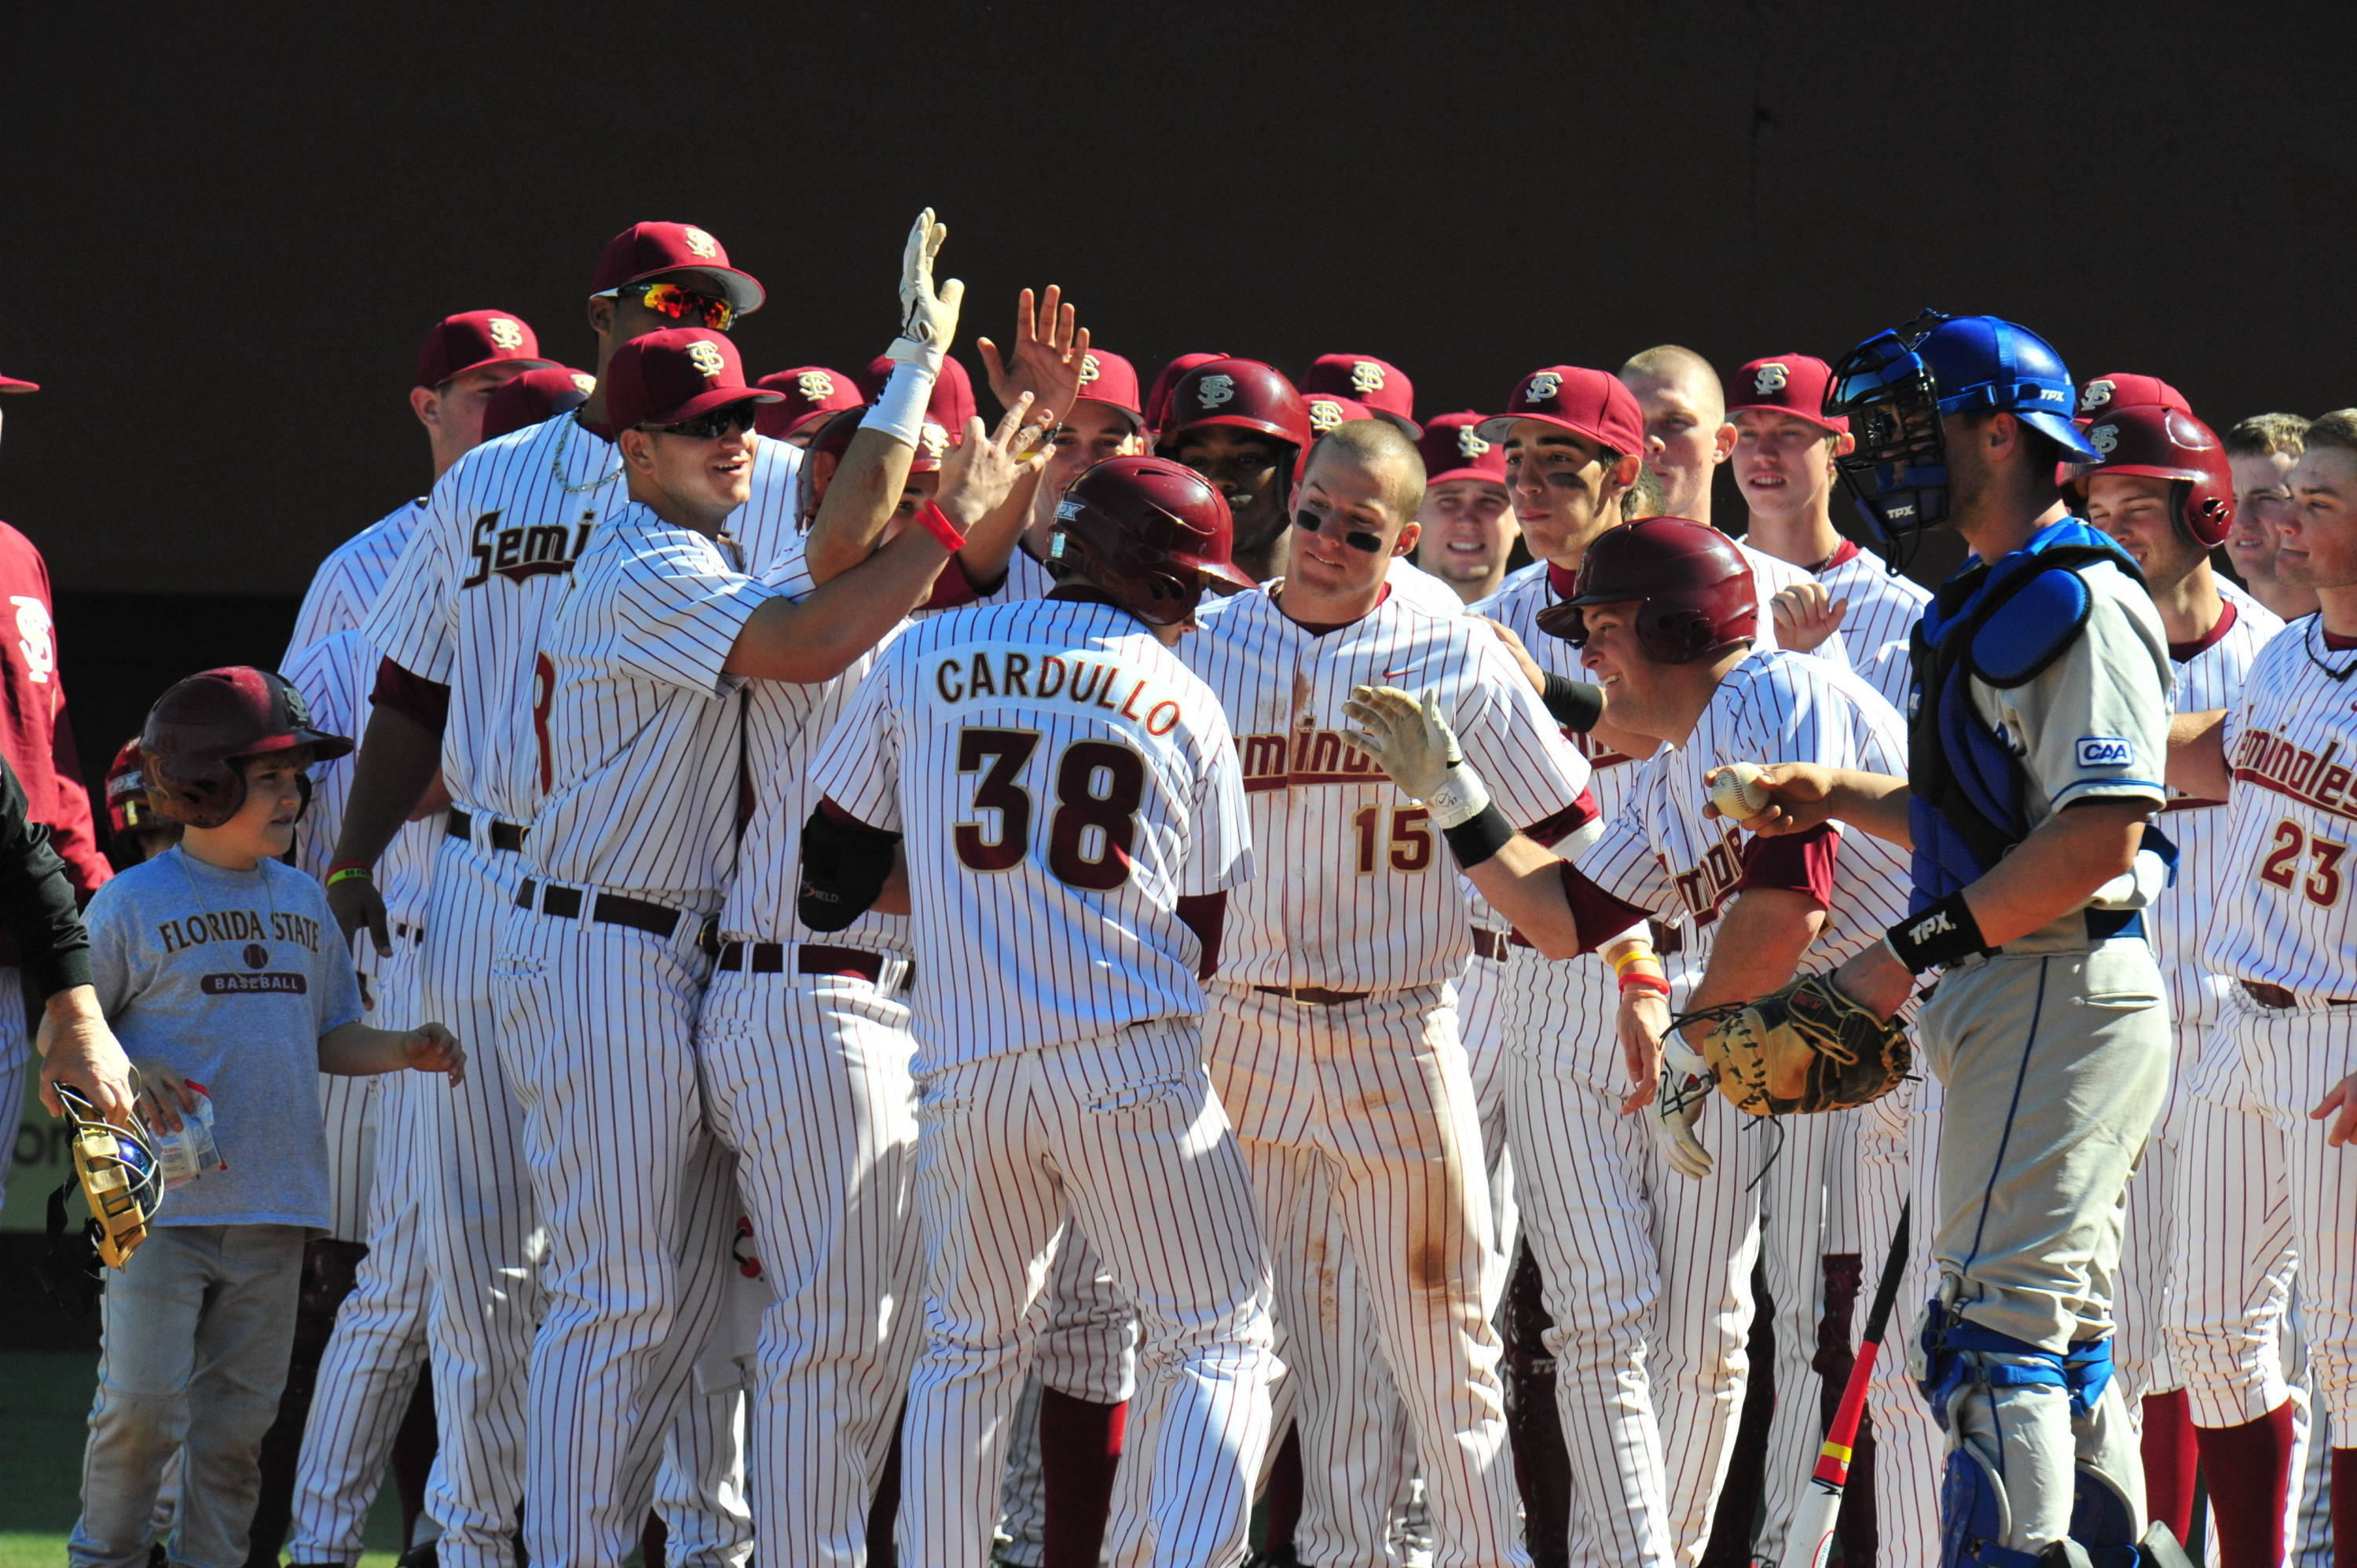 Cardullo celebrates with teammates after hitting a three-run shot in the second inning.